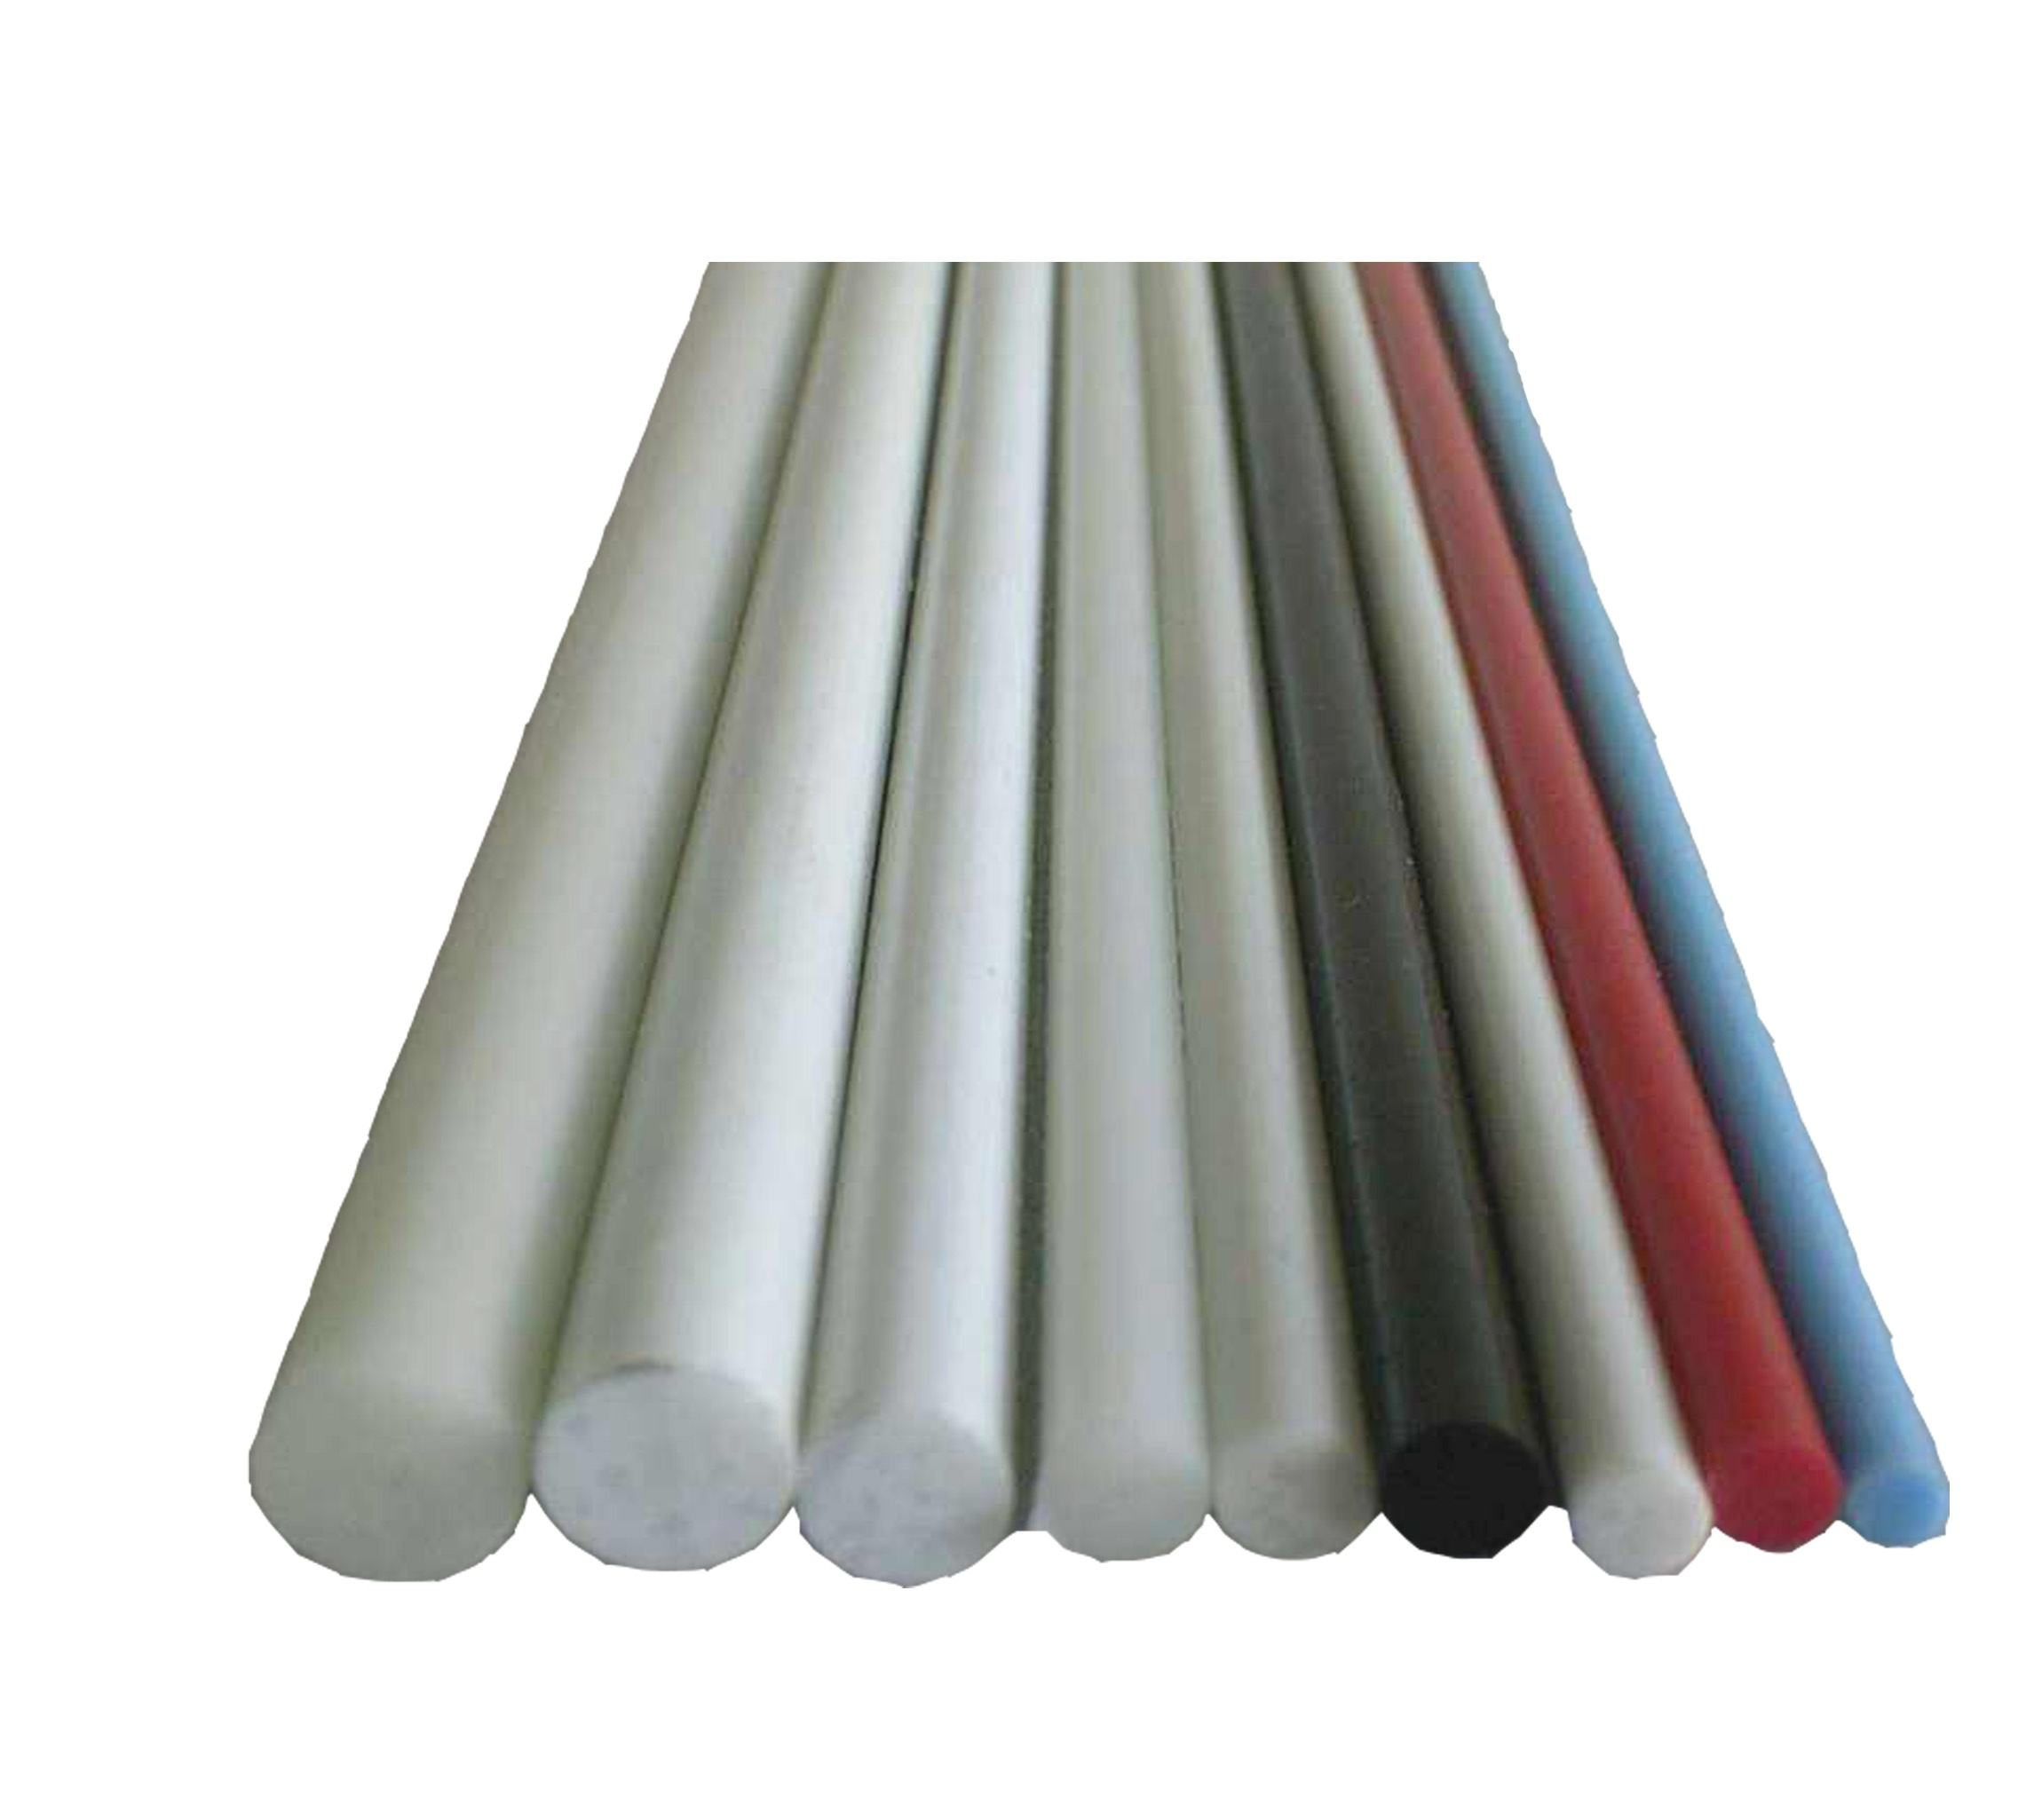 Fiberglass reinforced plastic stake for outdoor use in the agriculture industry